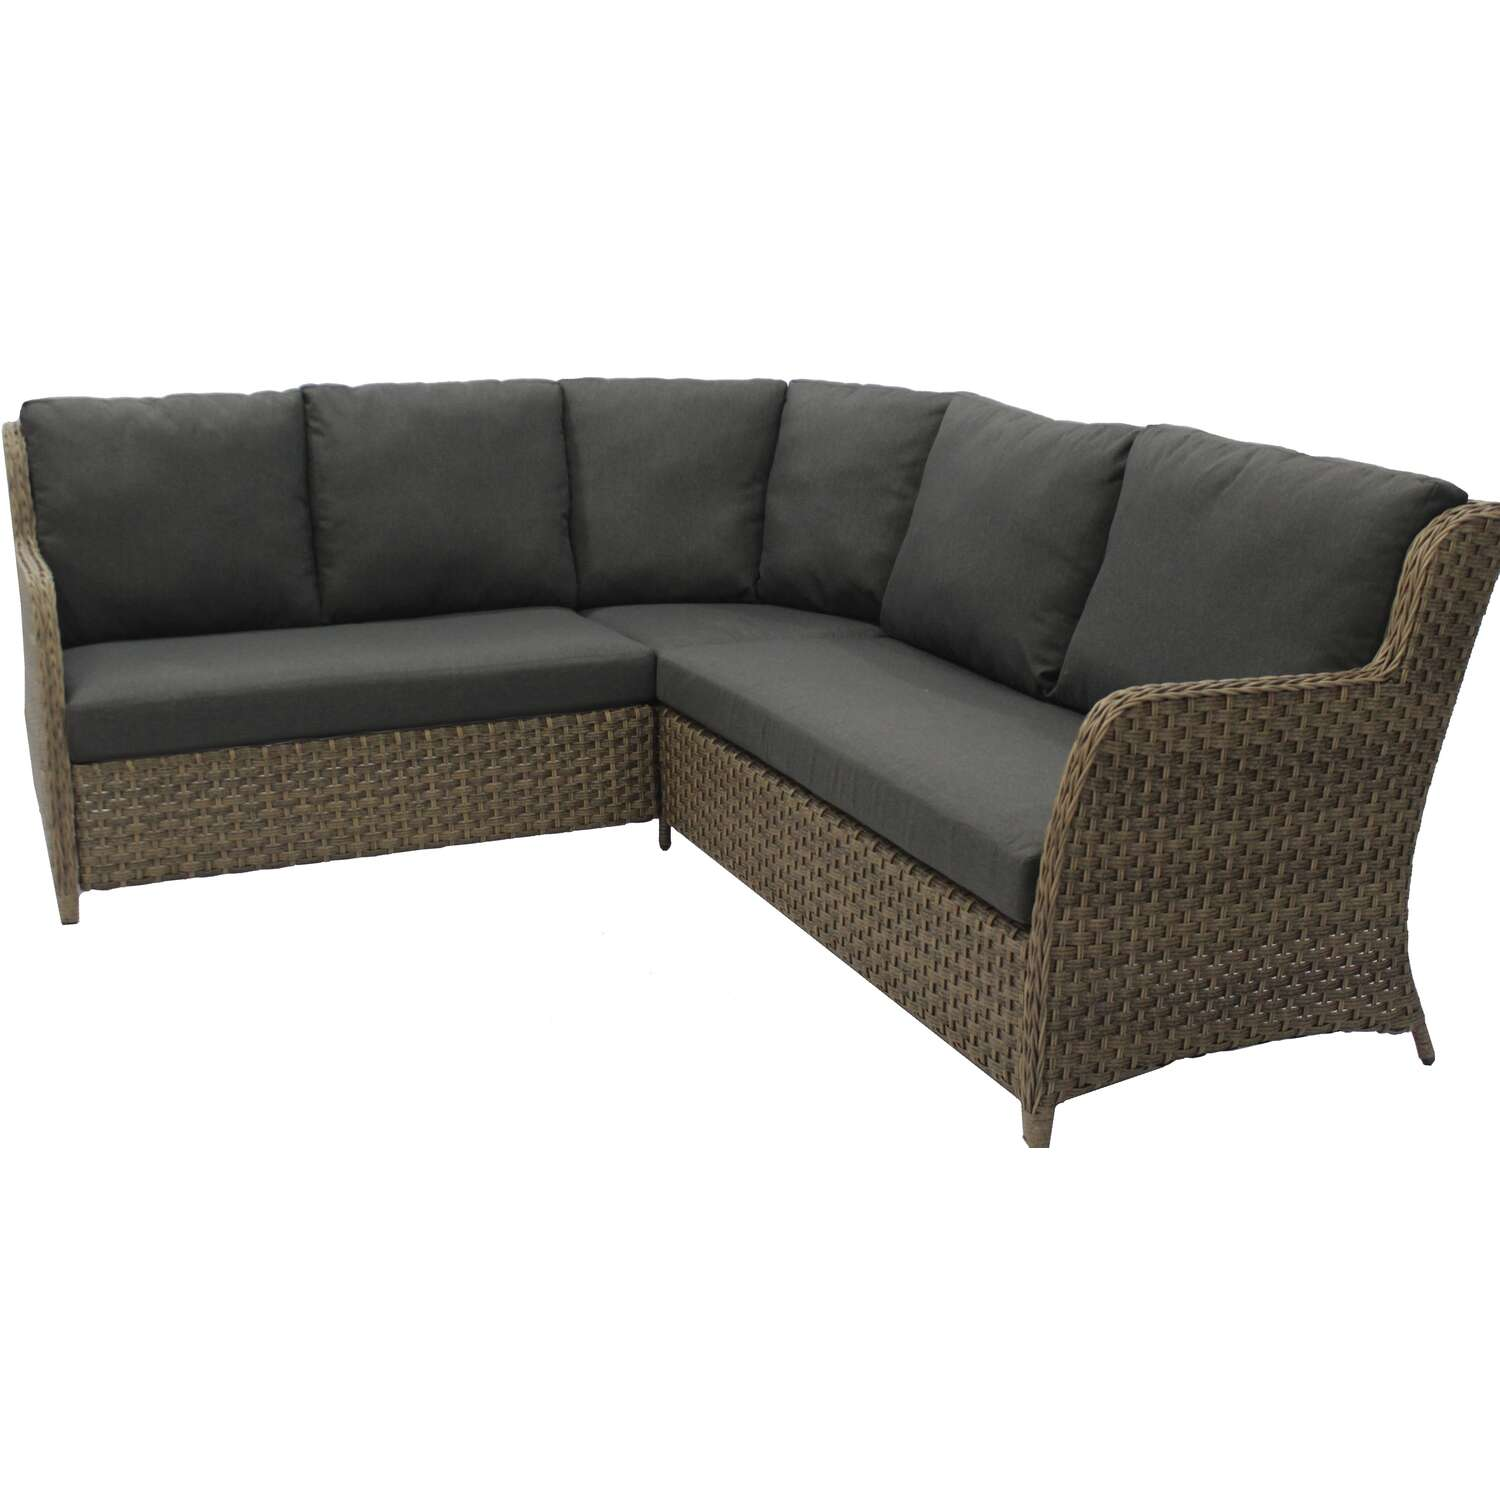 Living Accents Ashton 6 pc. Greige Steel Modular Sectional Deep Seating Set Charcoal Cushions